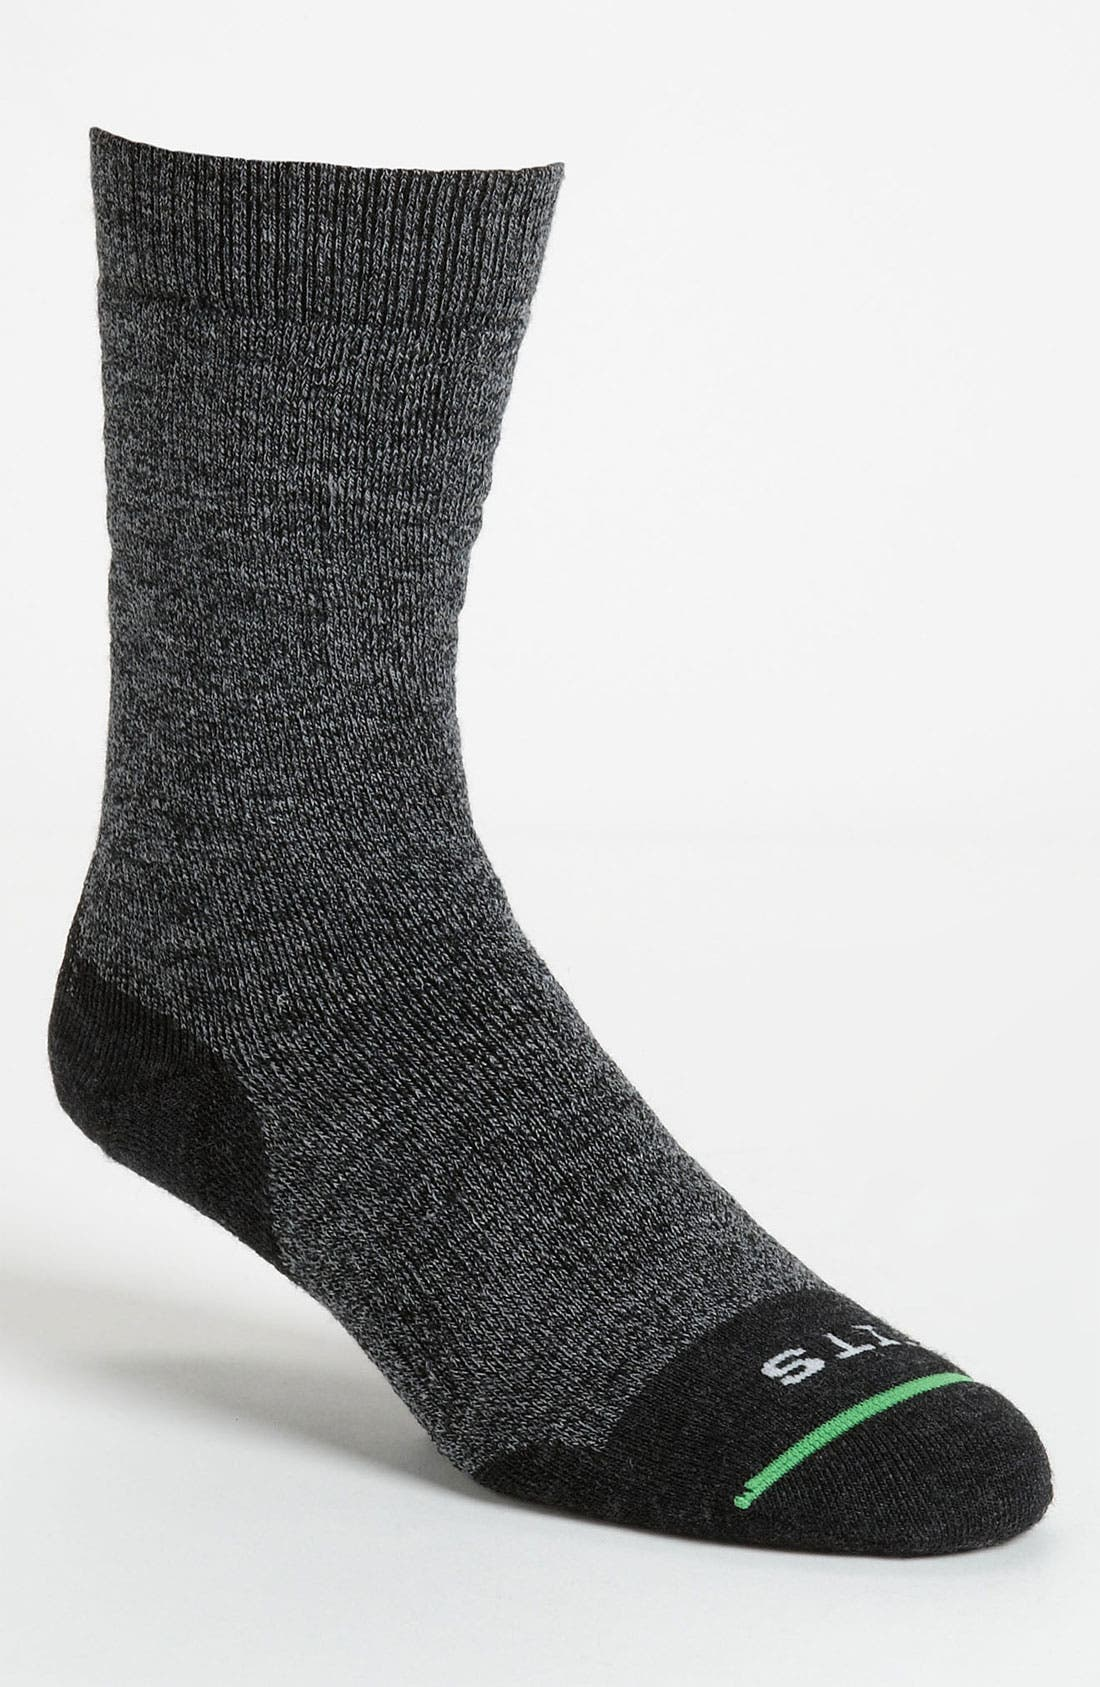 Alternate Image 1 Selected - FITS Sock Co. 'Nordic' Crew Socks (Online Exclusive)